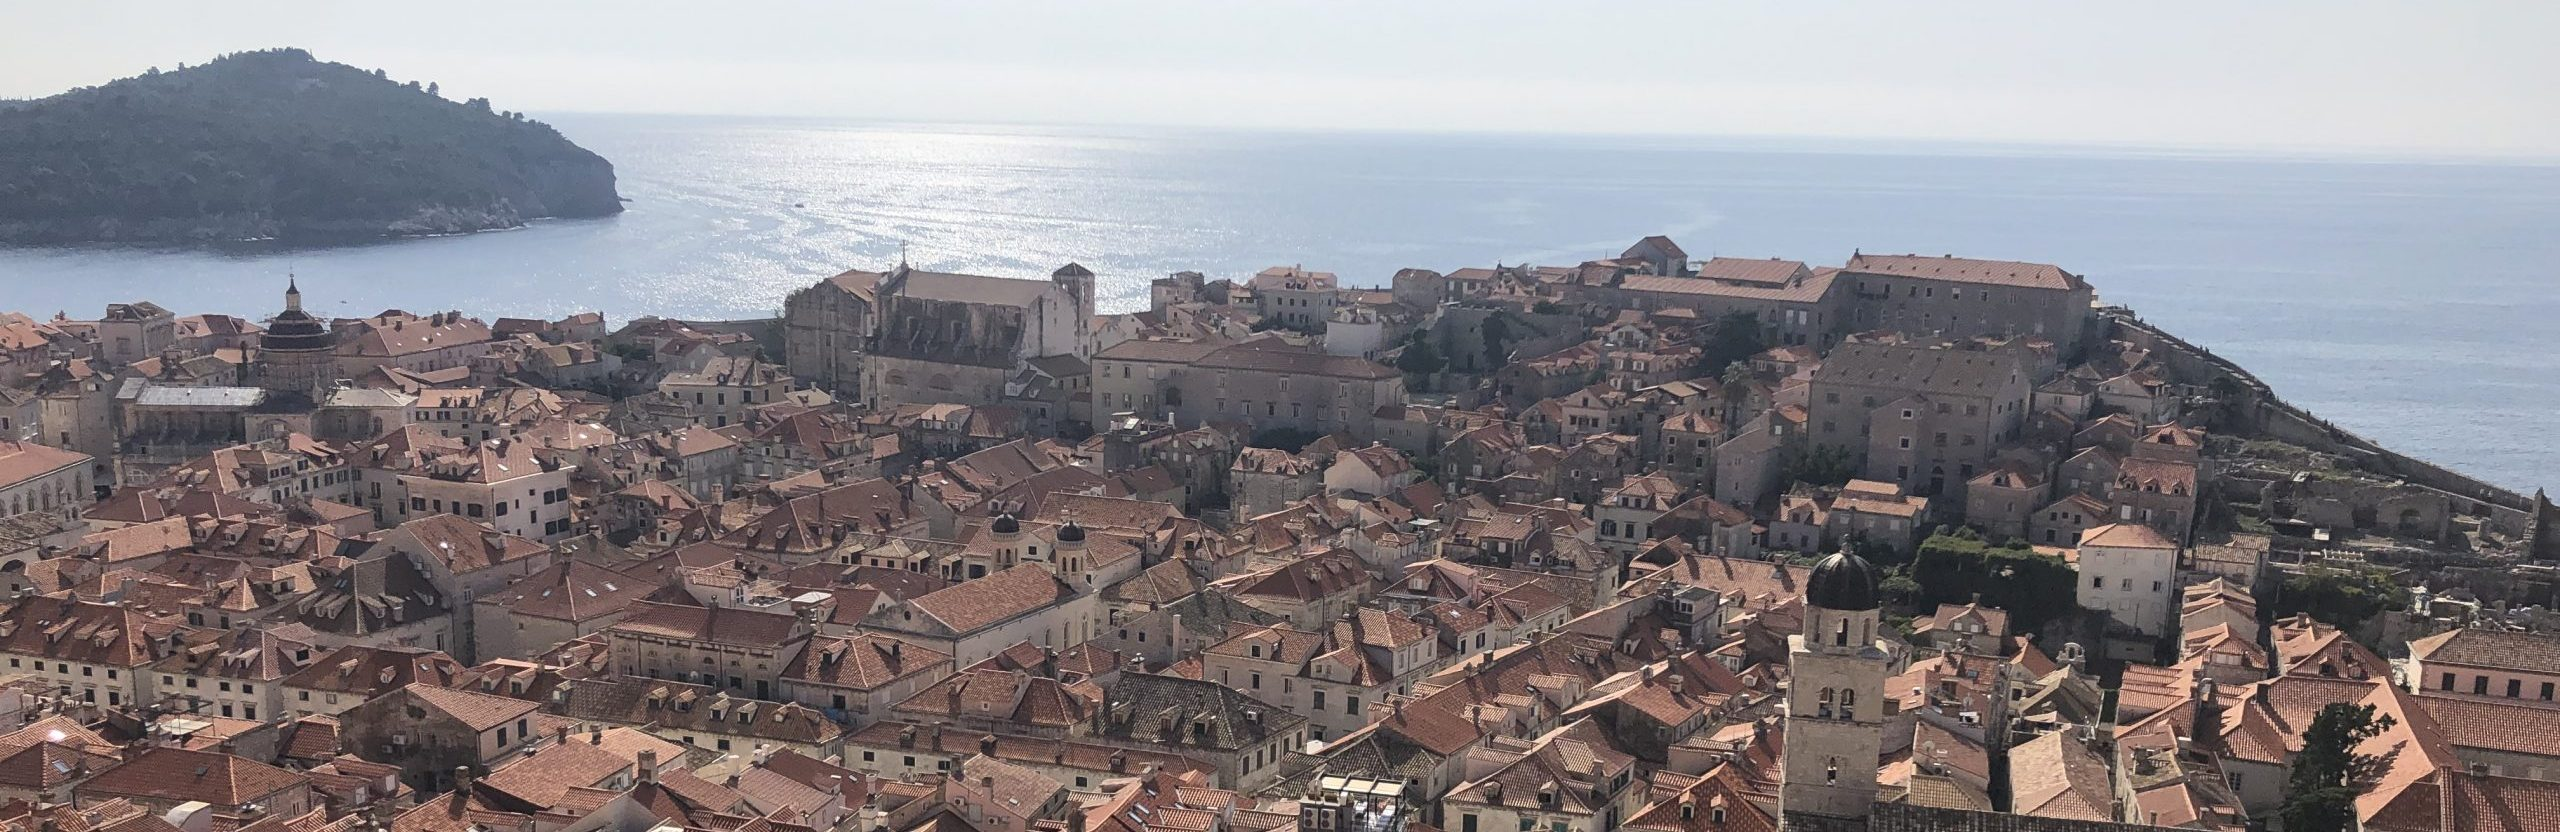 Must See Sites in Dubrovnik - The Traveling Storygirl